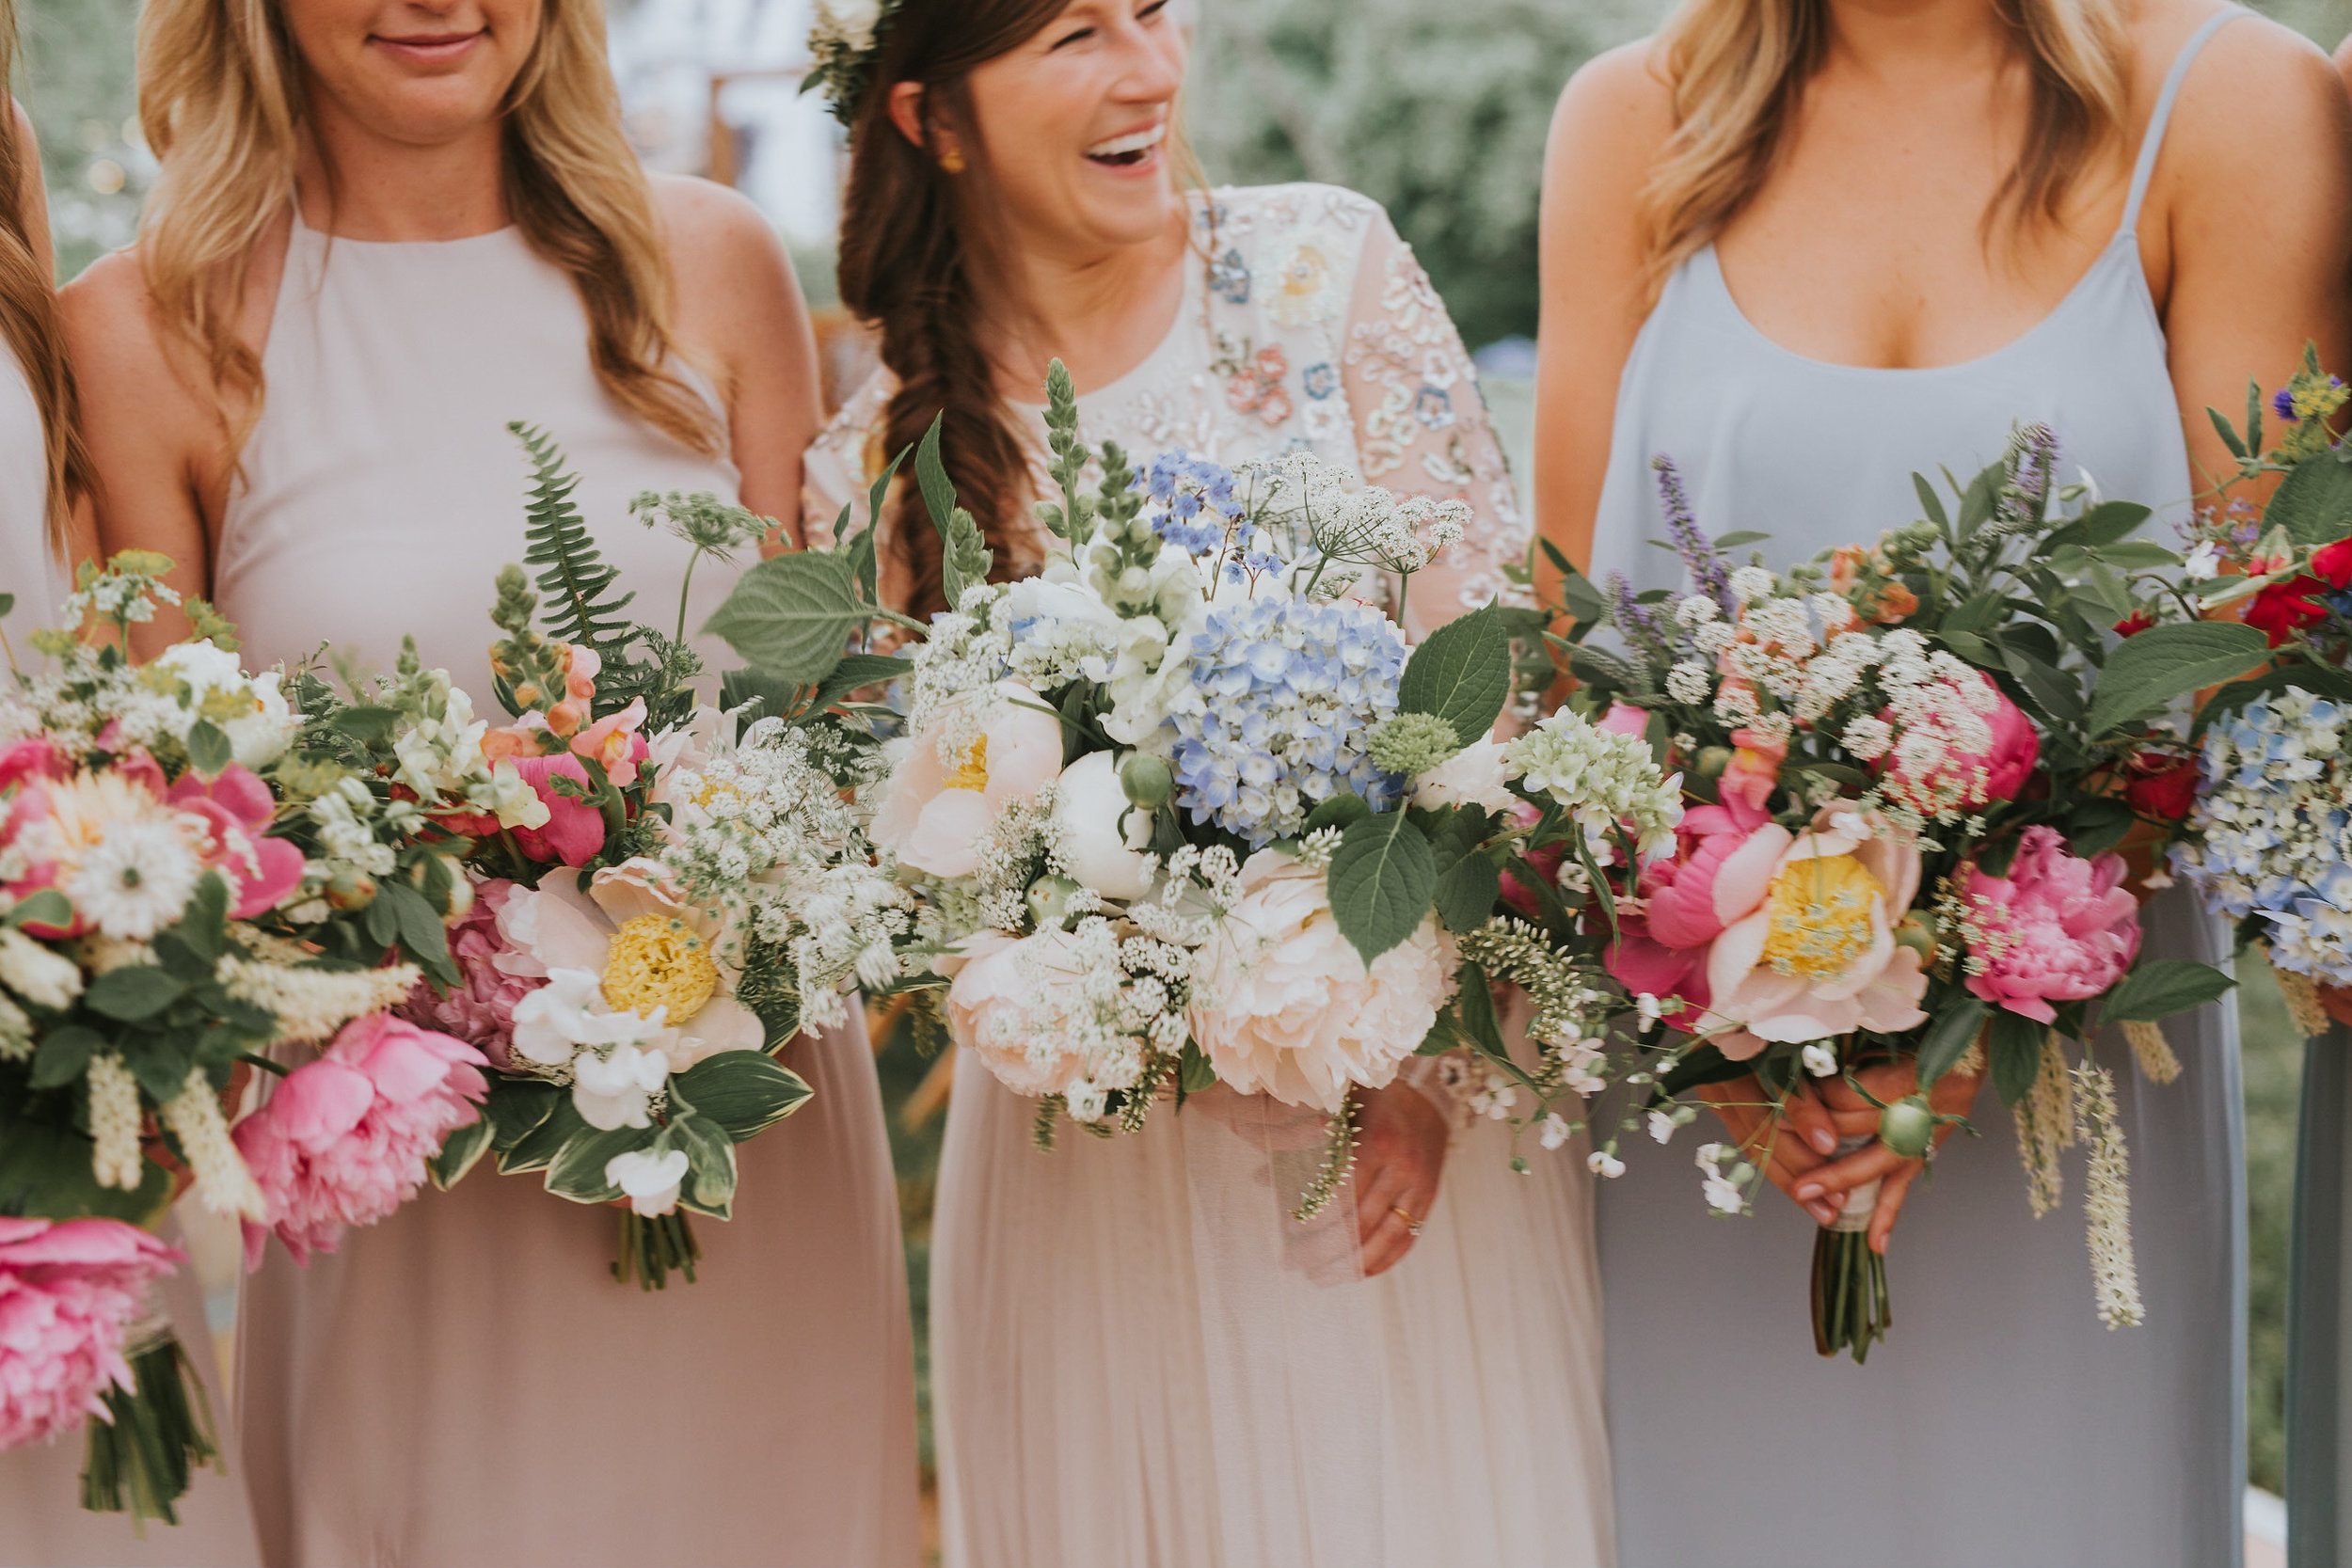 Bridemaids Bouquets.jpg